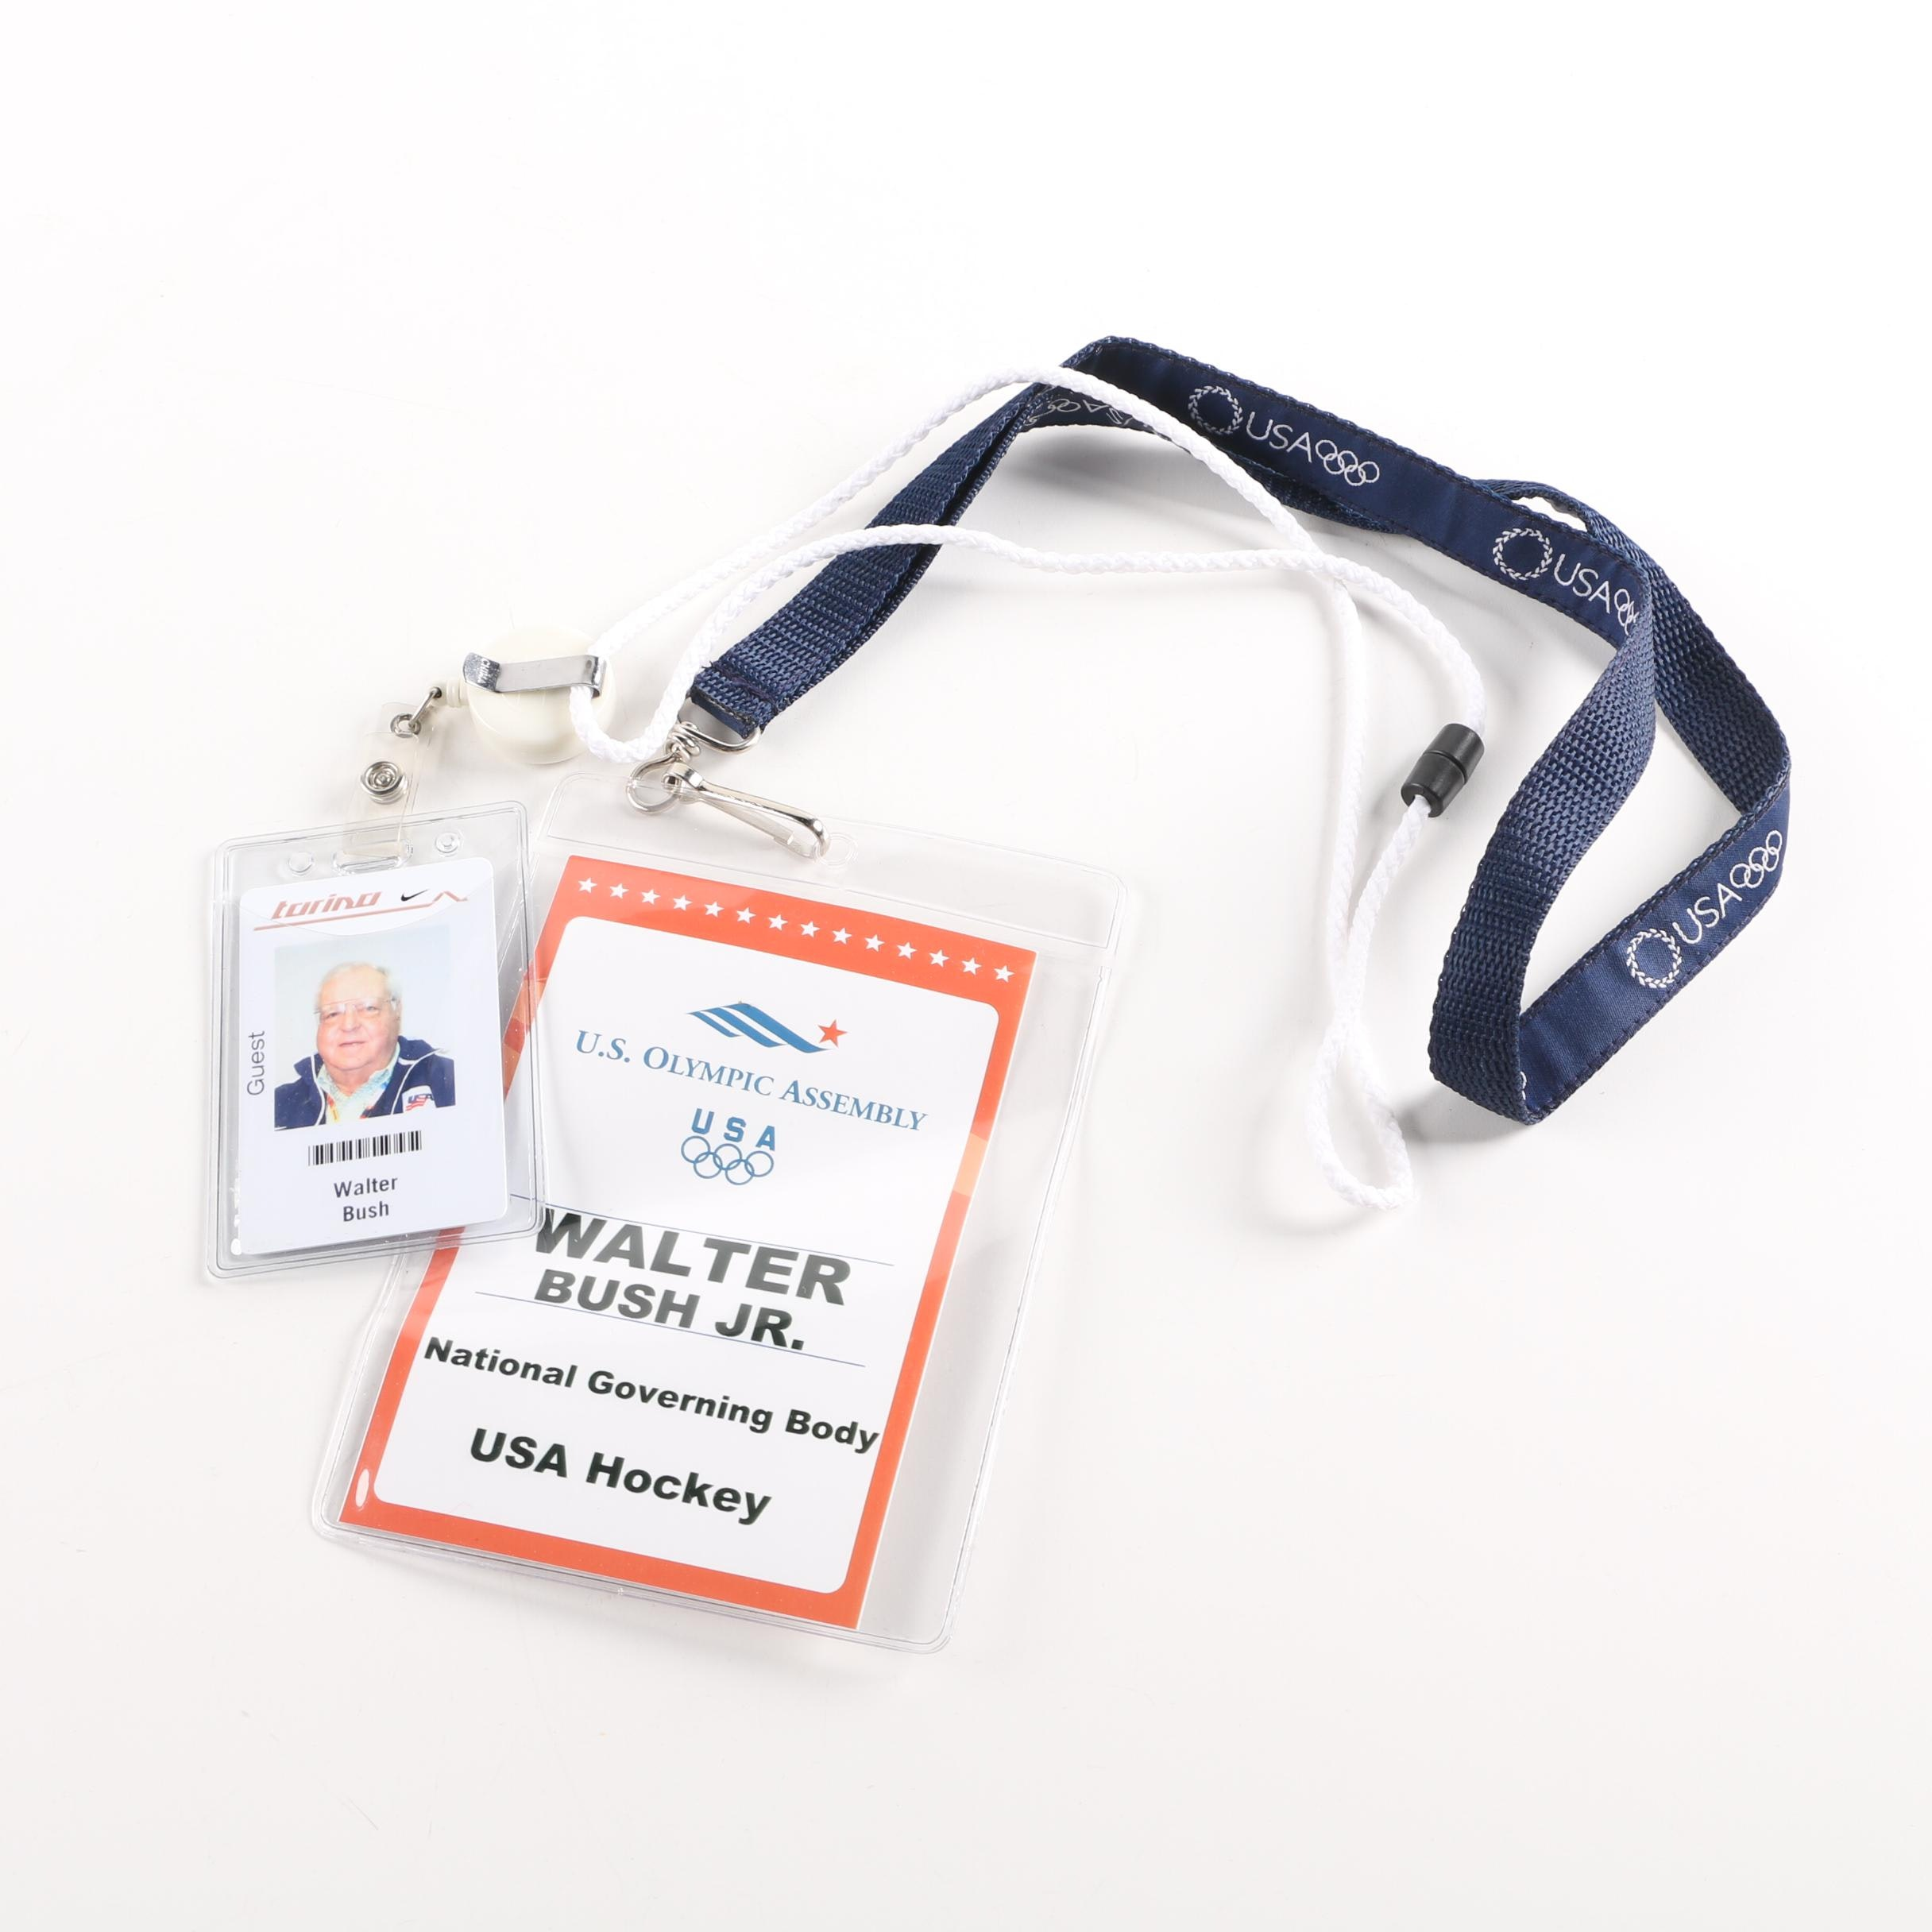 Olympic Security Passes For Walter Bush Jr.